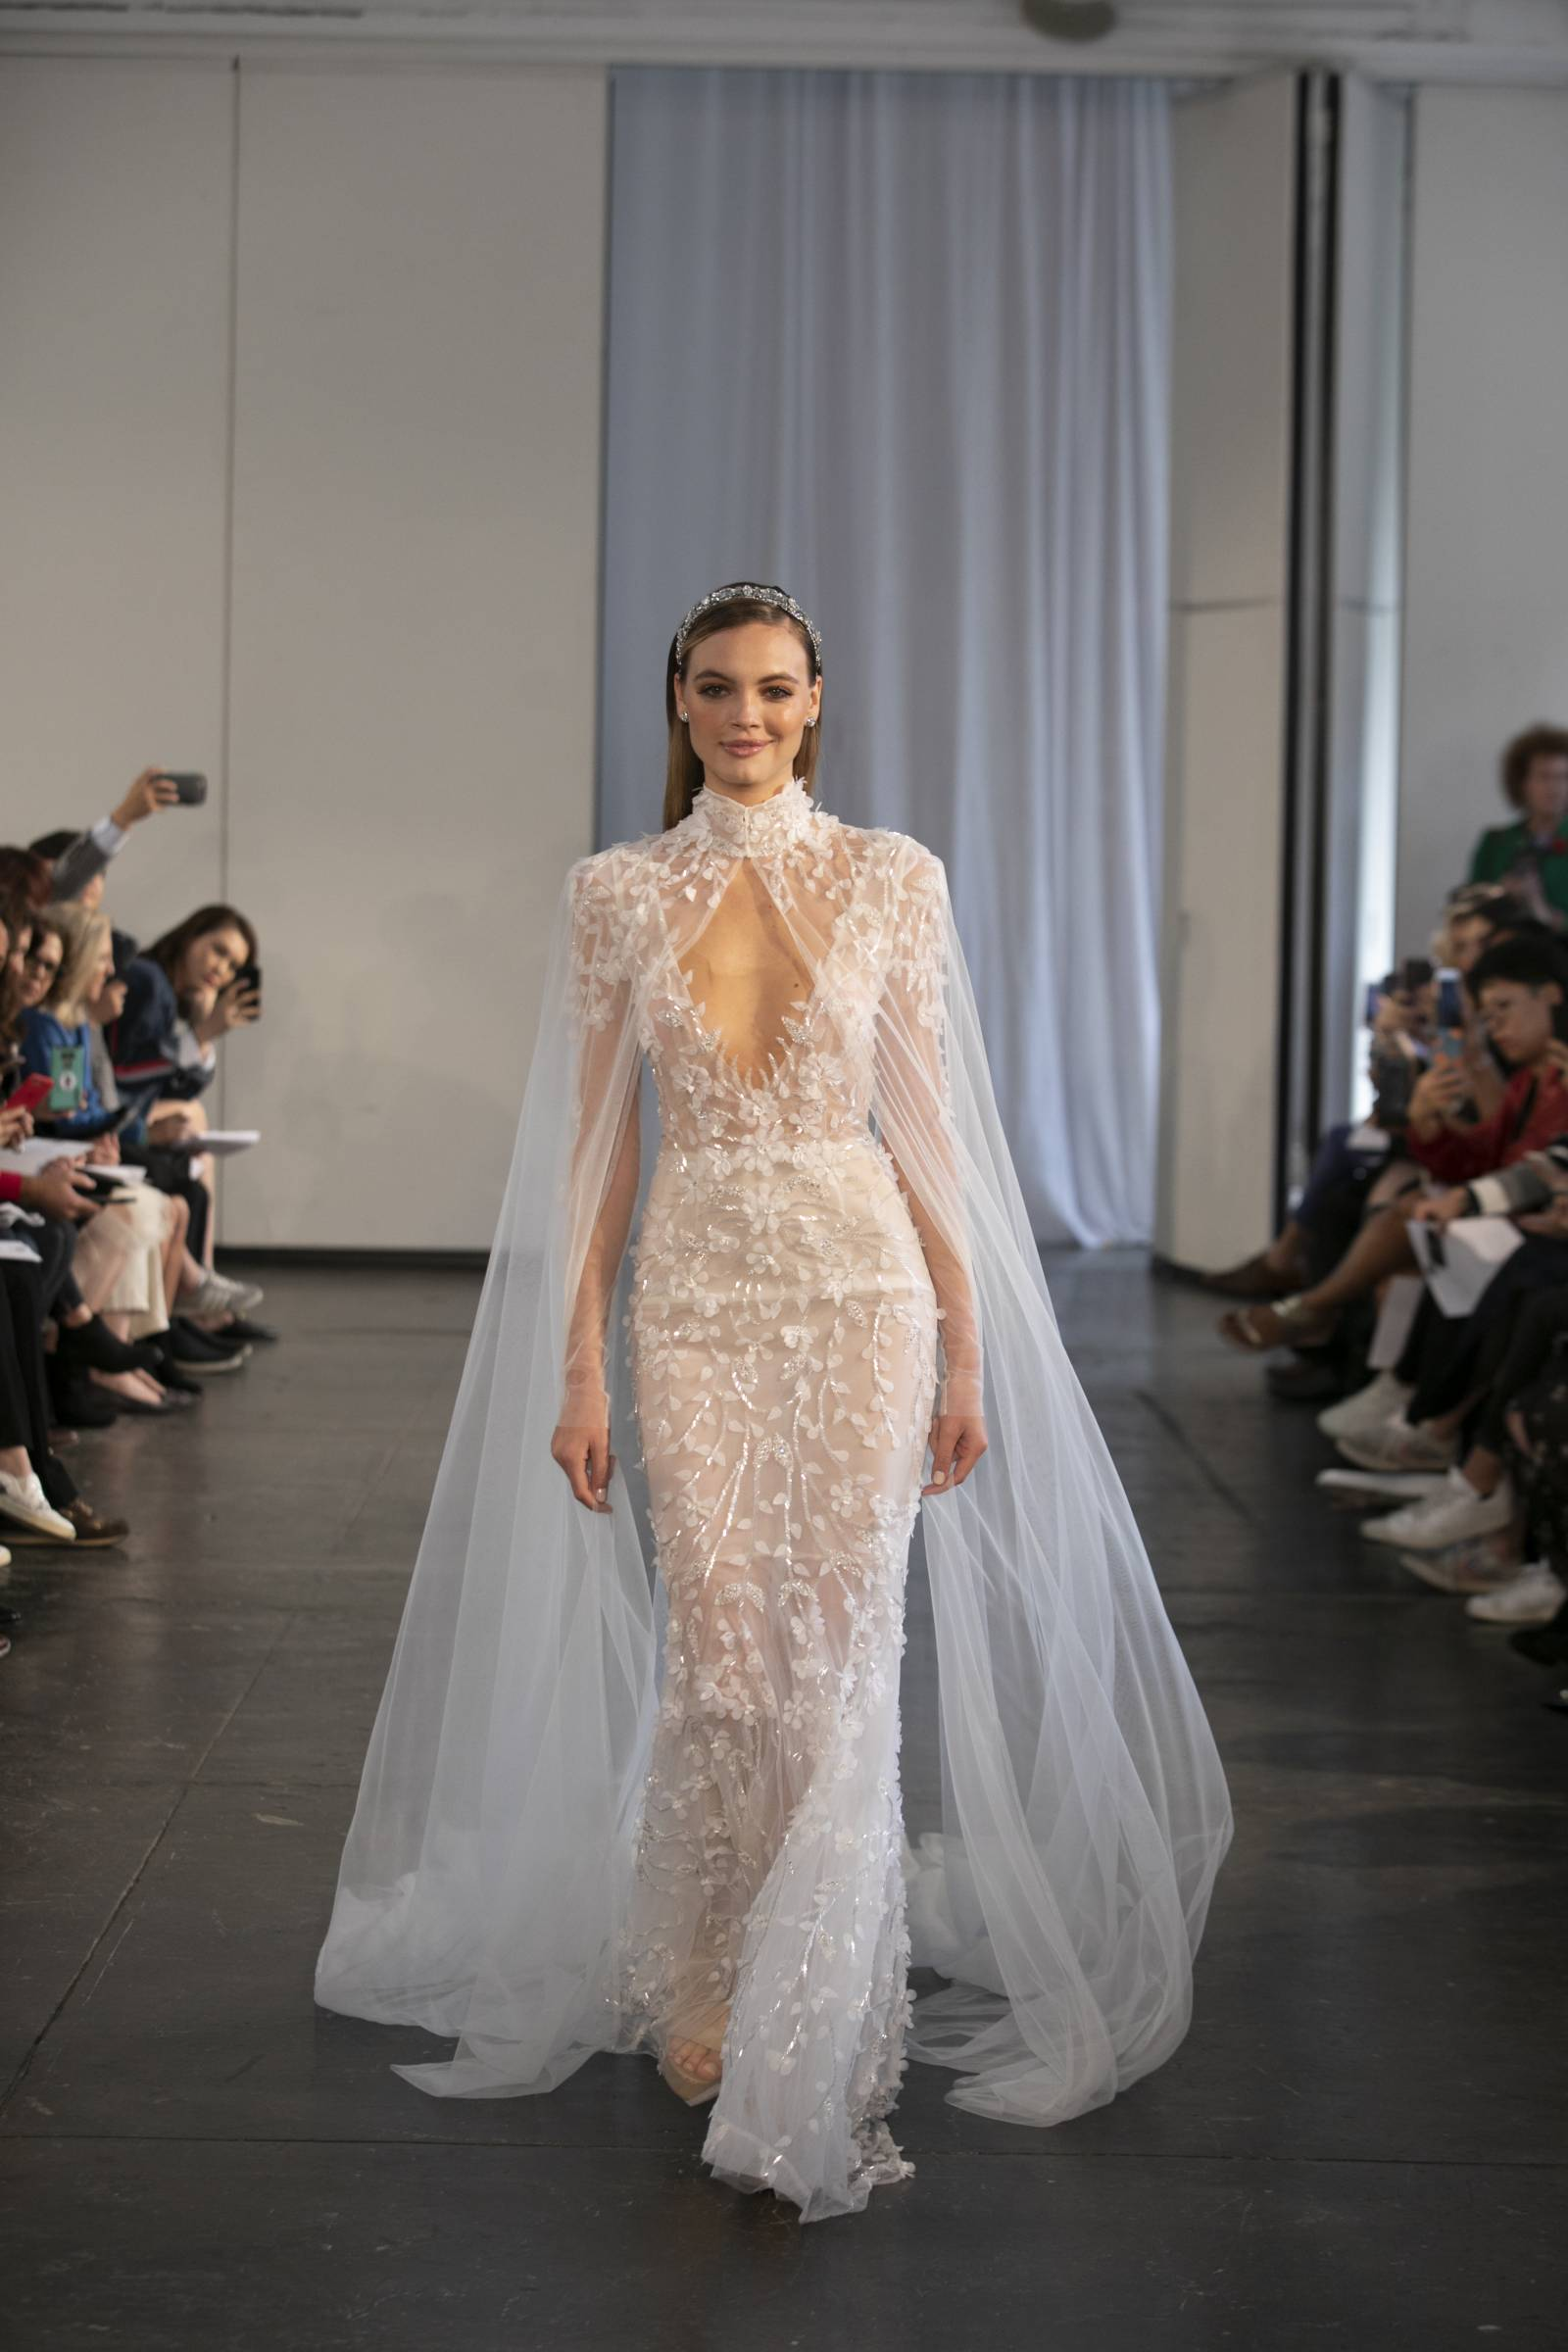 Getting Married in 2019? Here Are The Bridal Fashion Trends to Look For on Apple Brides!